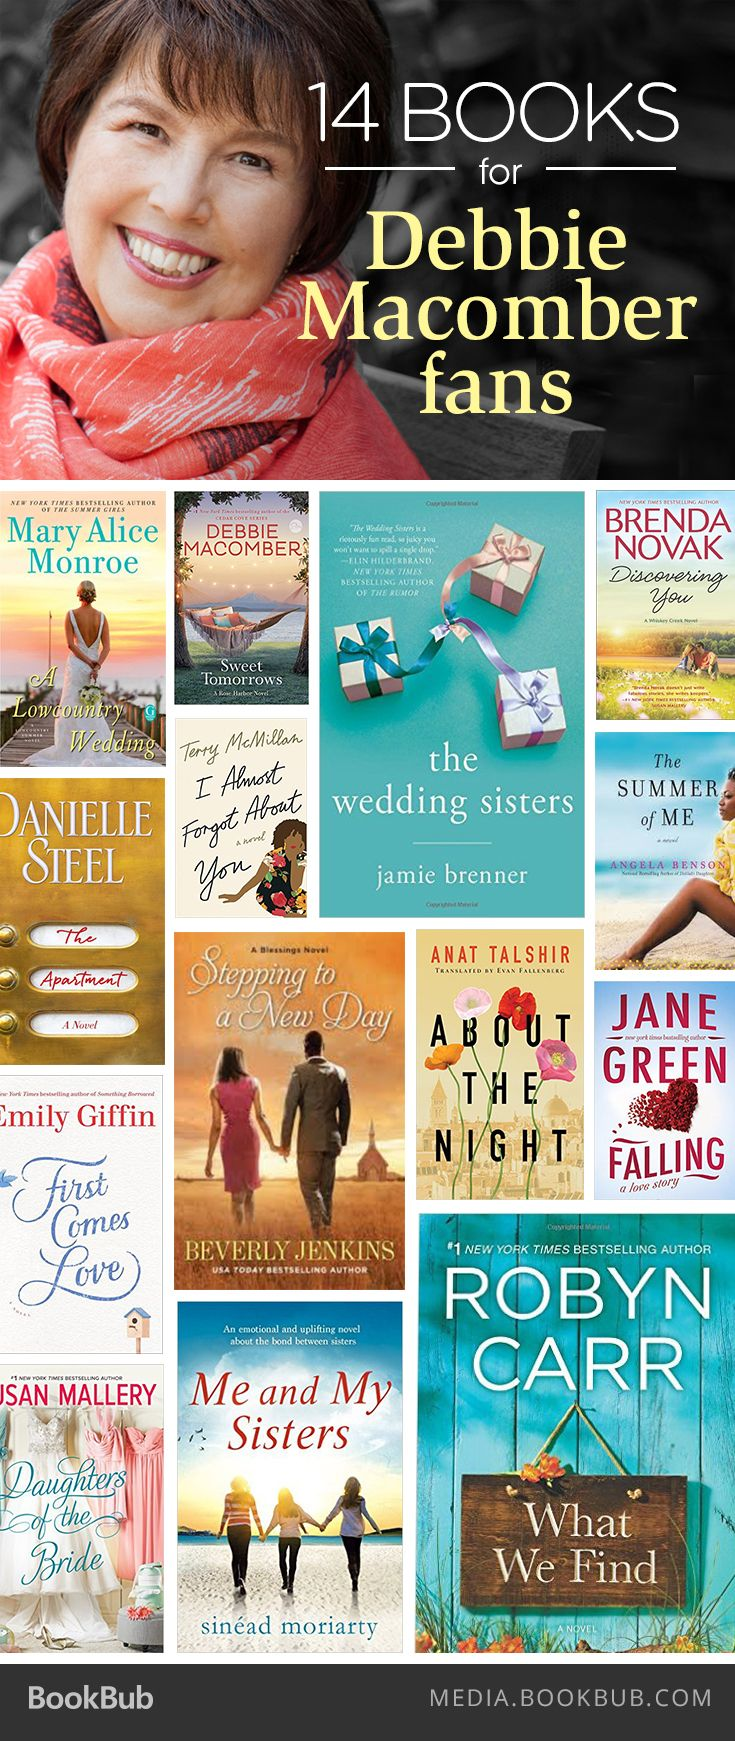 Fans of Debbie Macomber will love these 14 must-read books.